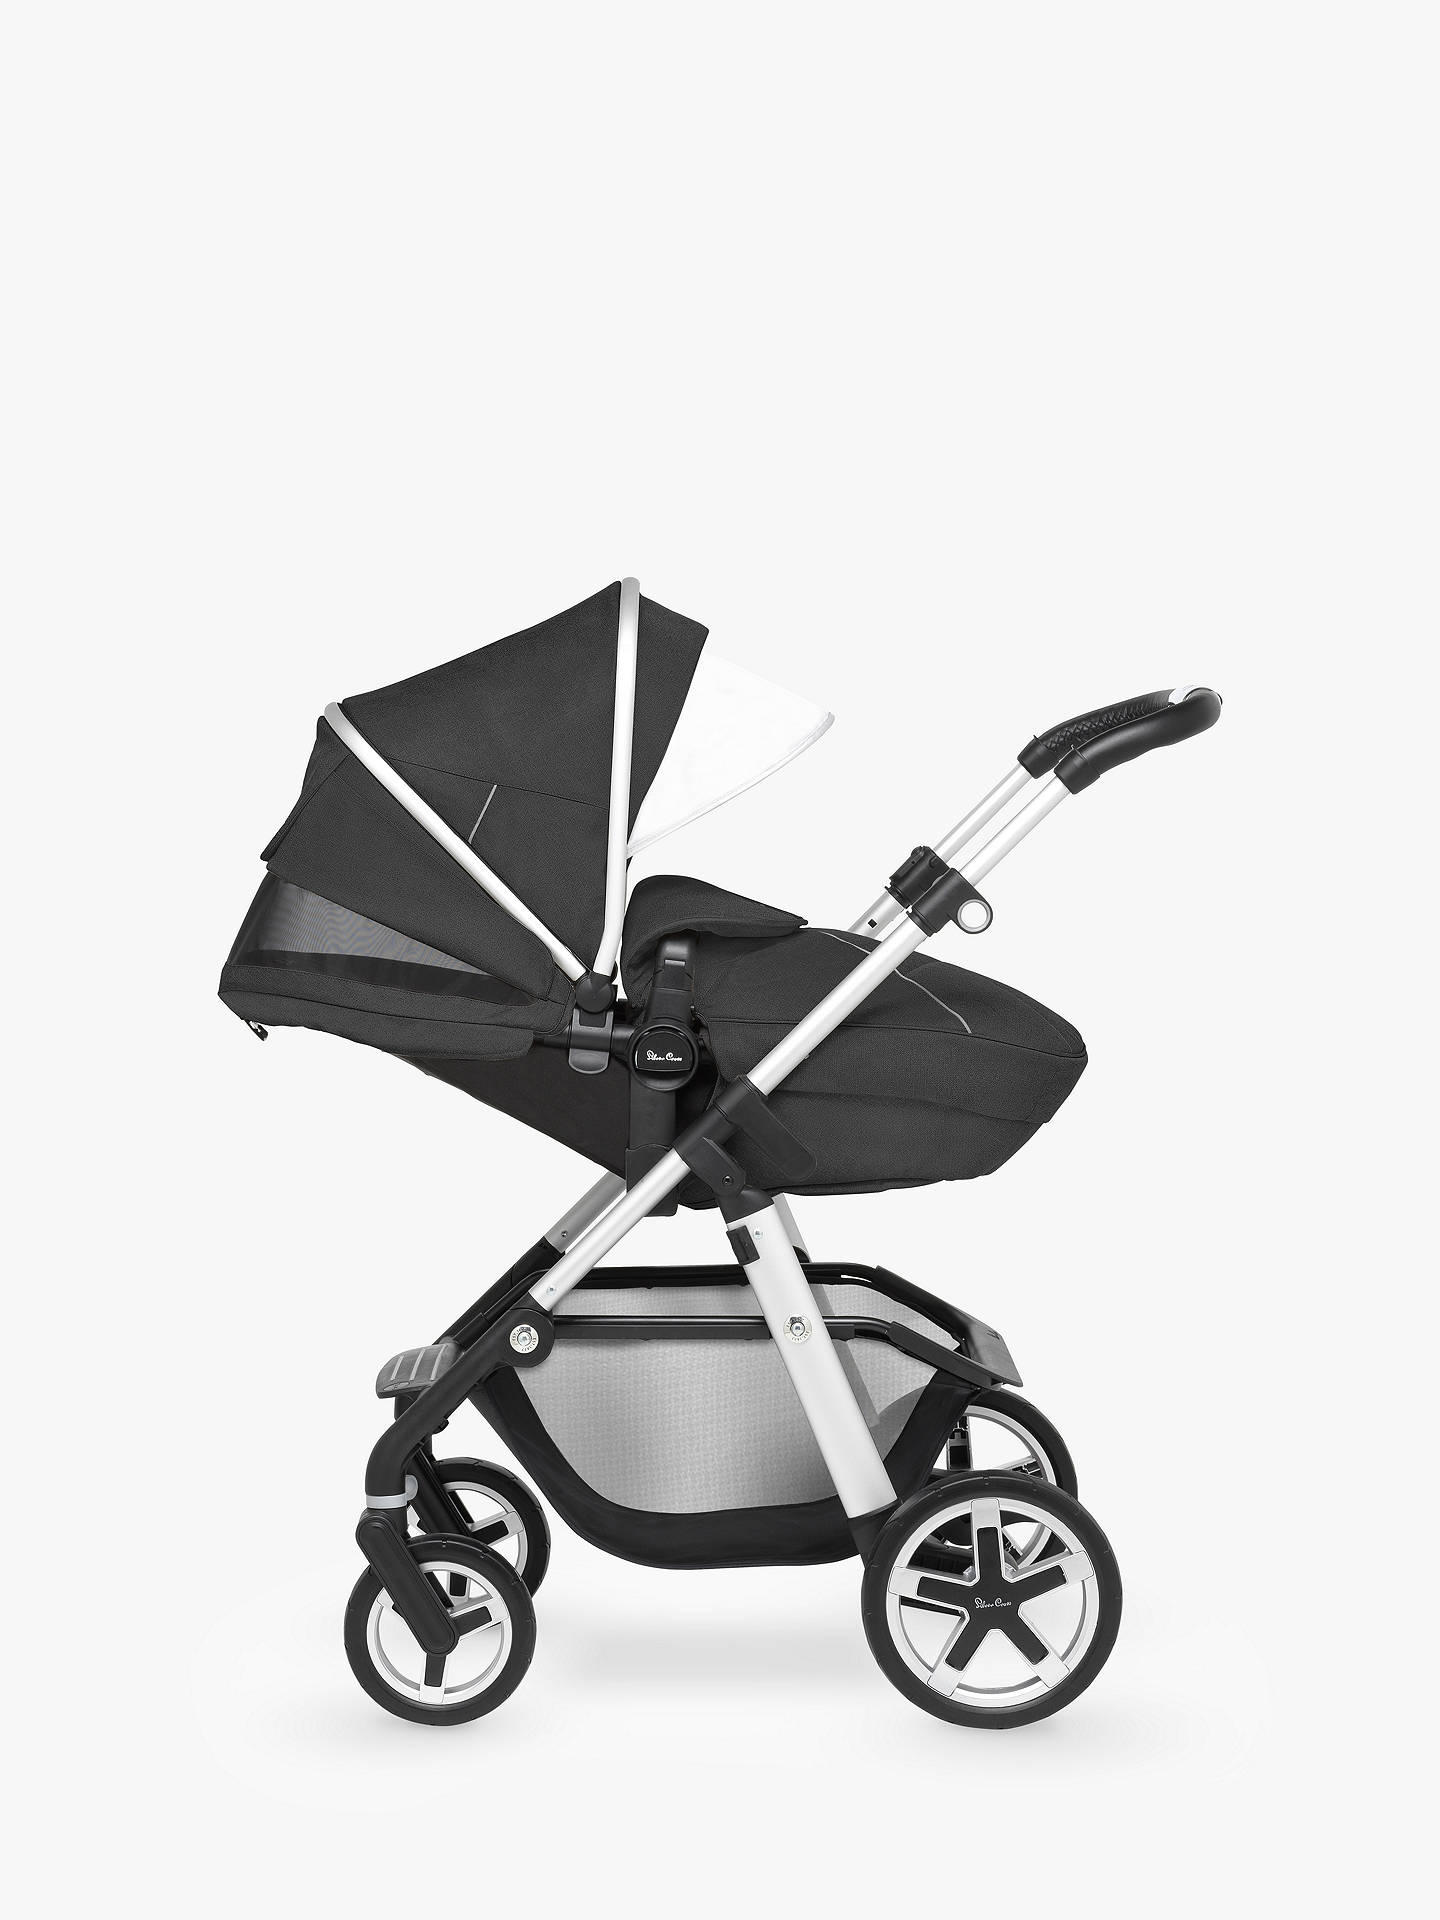 BuySilver Cross Pioneer Pushchair, Chassis, Carrycot and Essentials Pack, Onyx Black Online at johnlewis.com